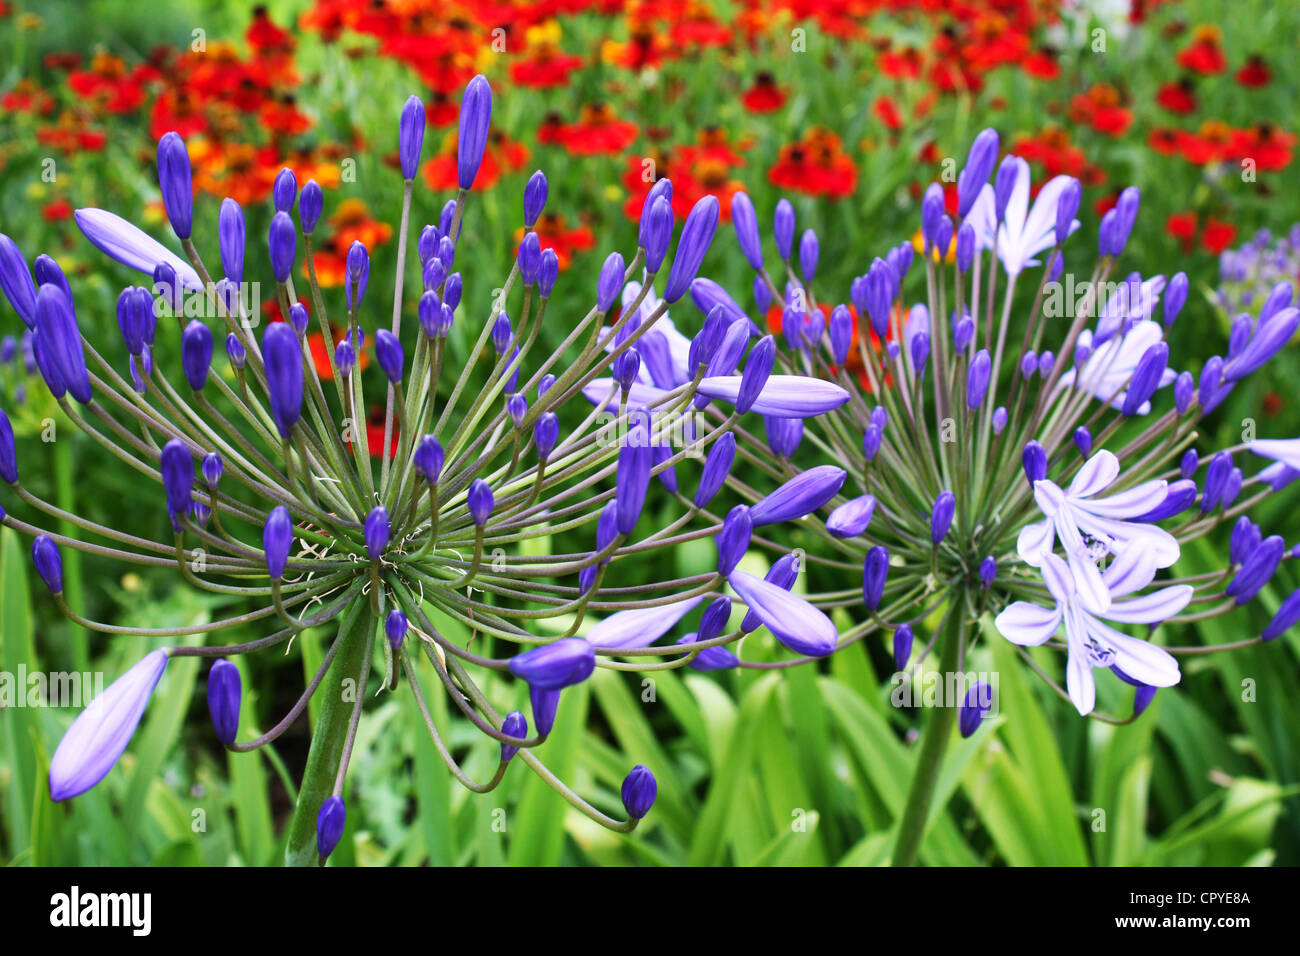 Blue agapanthus flowers in a garden - Stock Image